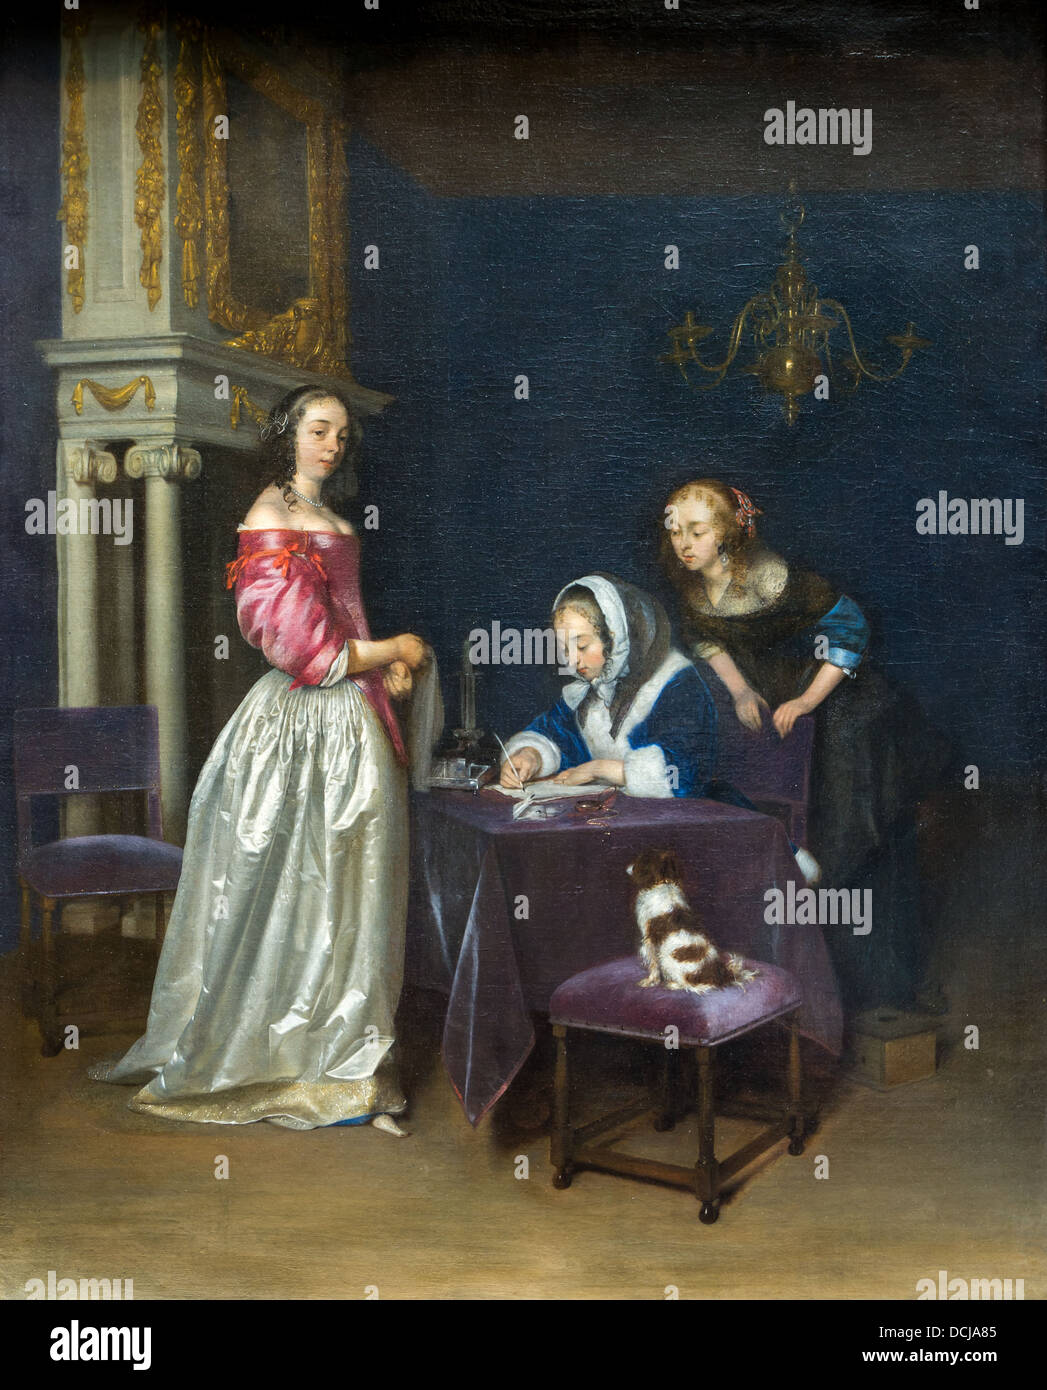 17th century  -  Curiosity - Gerard ter Borch (1660) - Metropolitan Museum of Art - New York Oil on canvas - Stock Image